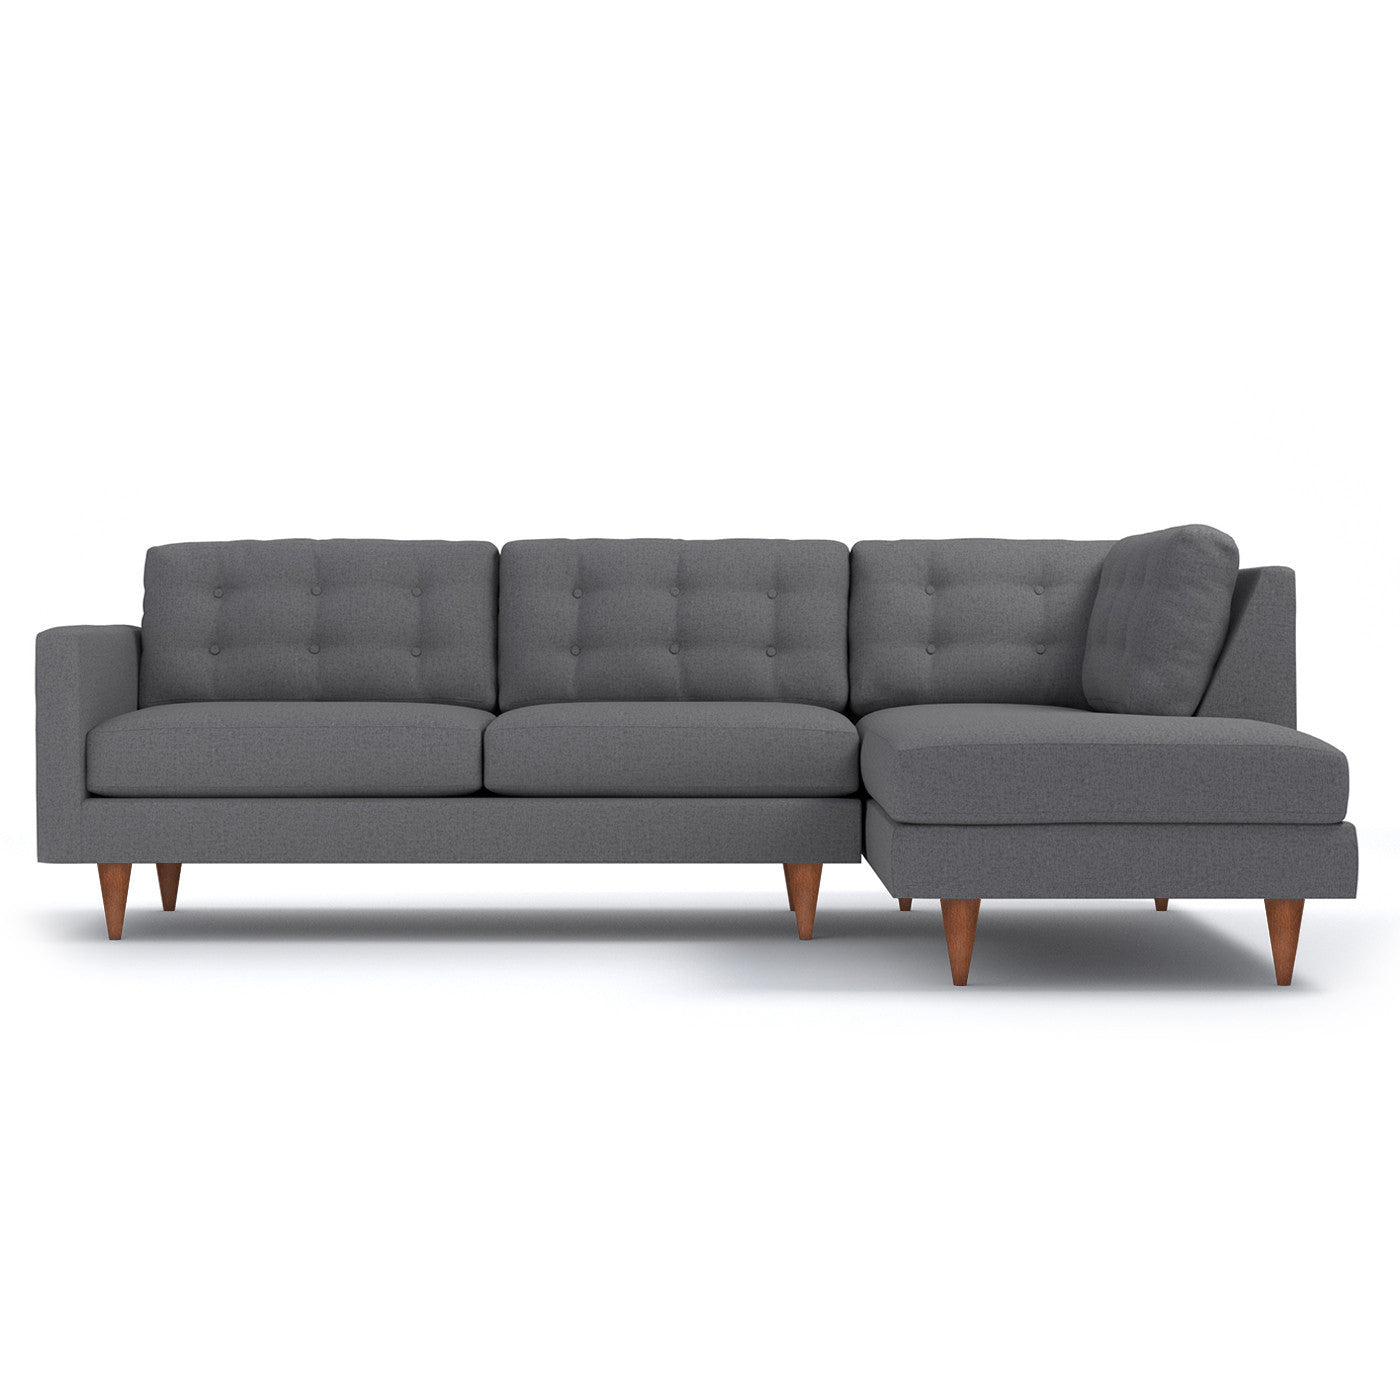 Logan 2pc Sectional Sofa  sc 1 st  Apt2B : 2 piece sectional couch - Sectionals, Sofas & Couches